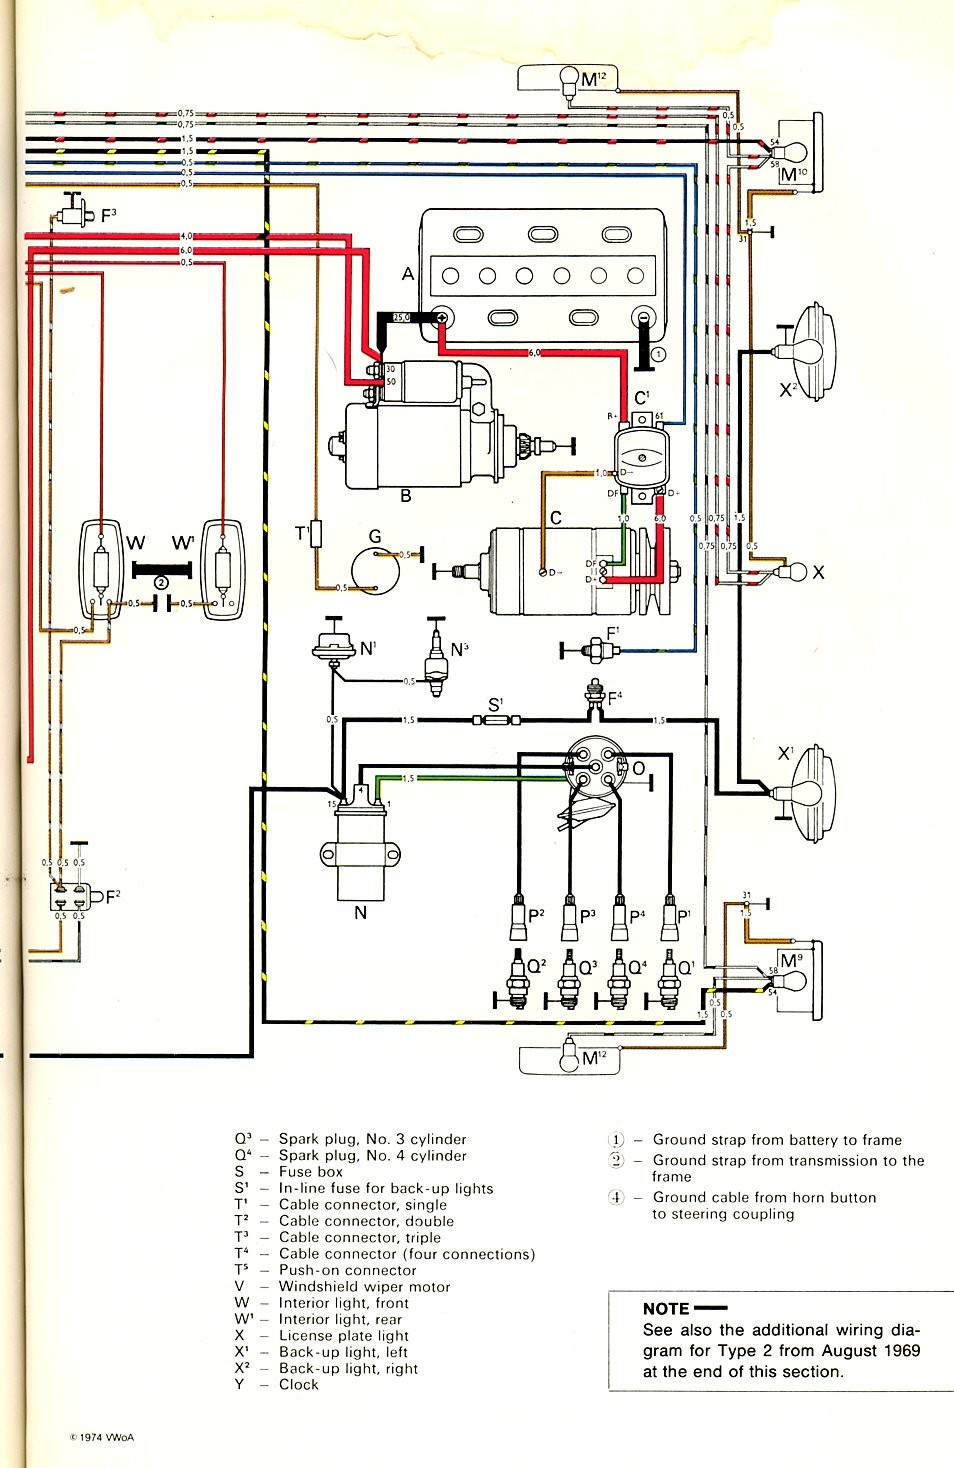 Vw Motorola Alternator Wiring Diagram Page 2 And 74 Best Of Image Rh Mainetreasurechest Com 3 Wire